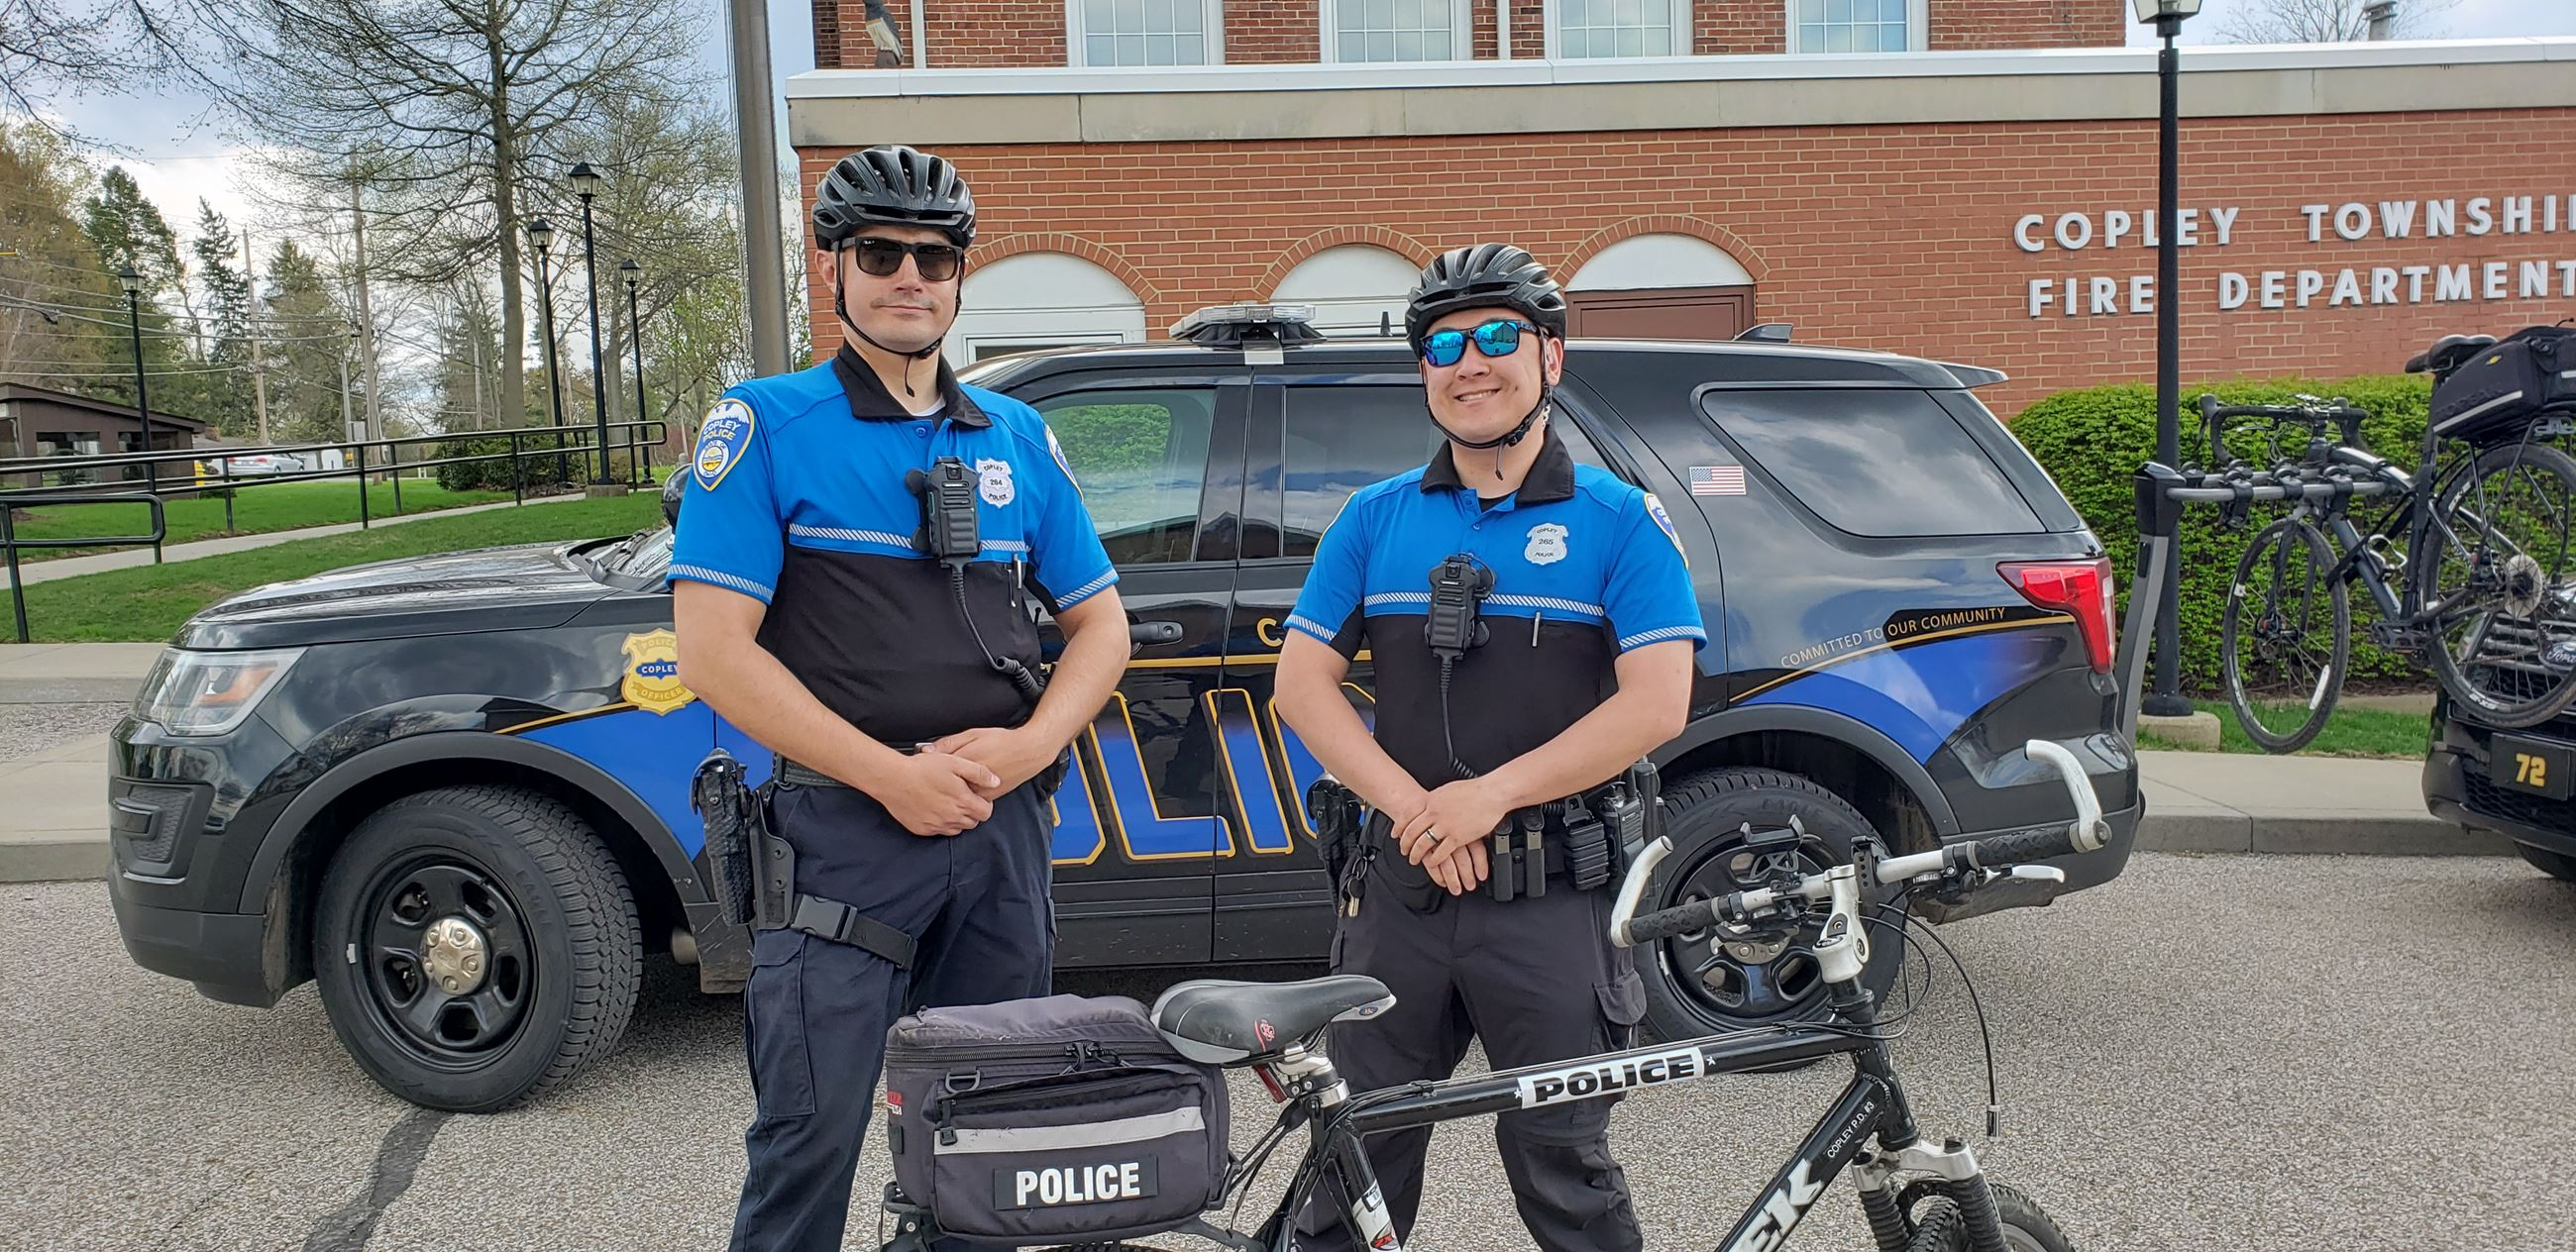 Officer Daniel Rafferty and Officer Daniel See